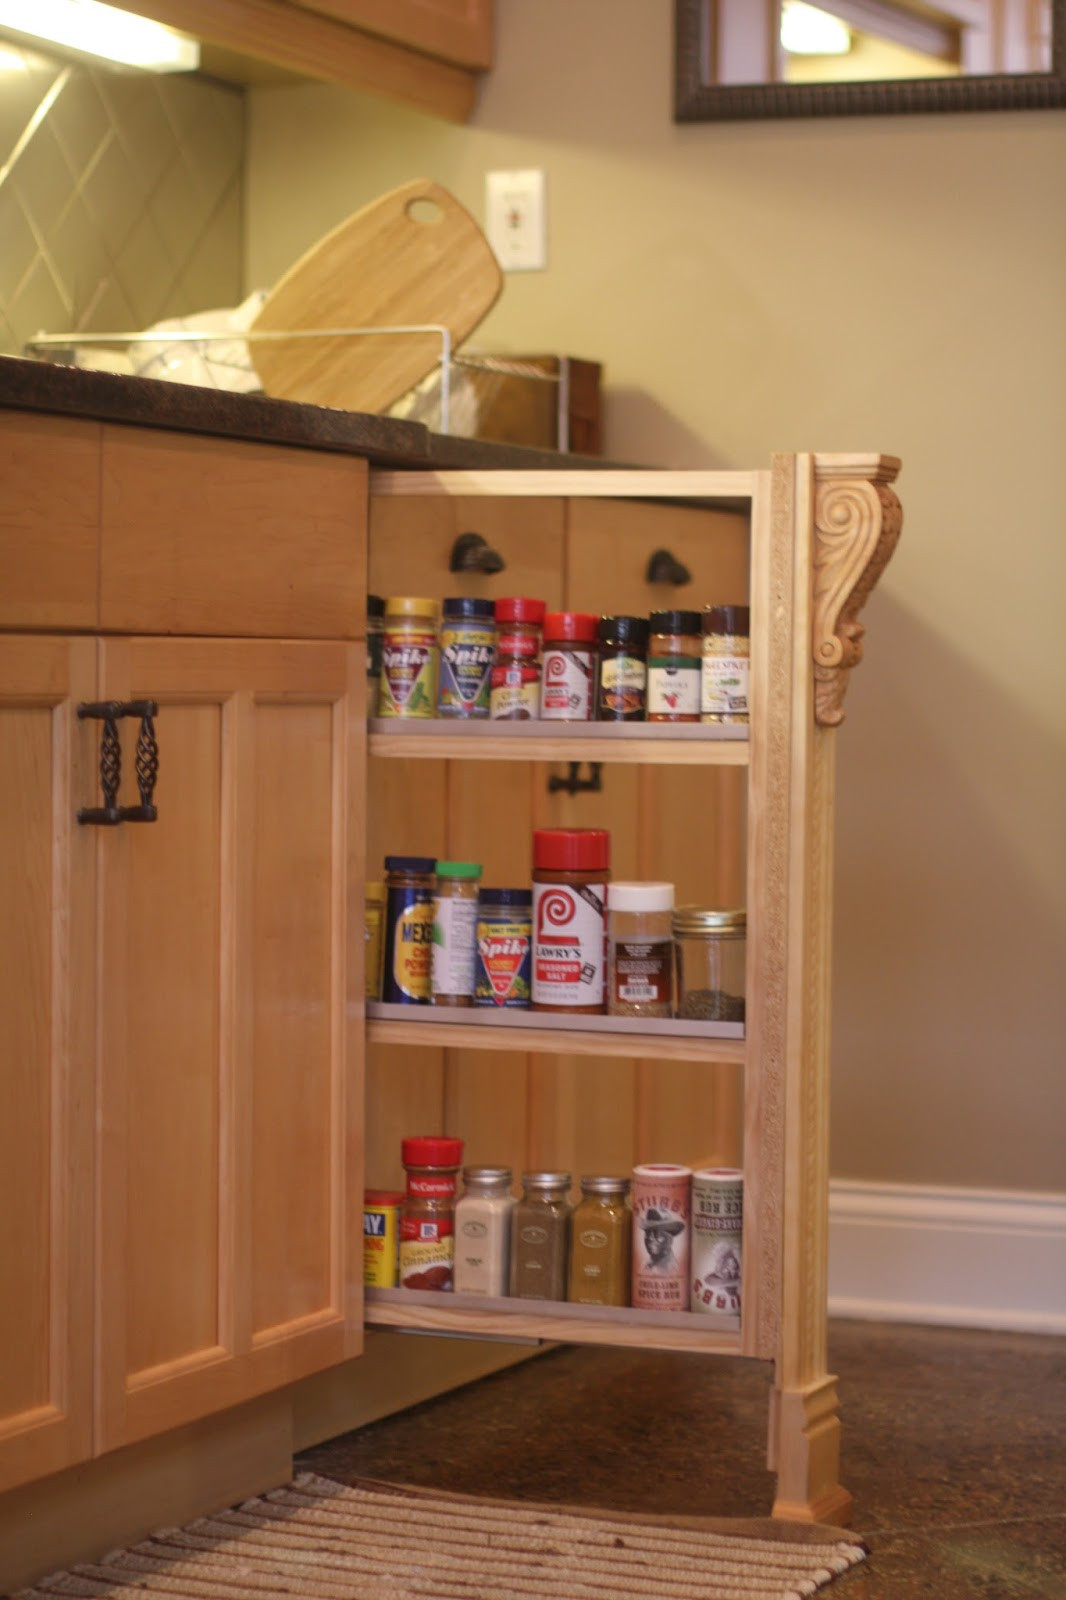 DIY Pull Out Spice Rack  DIY Slide out Spice Rack pleted HandyHubby